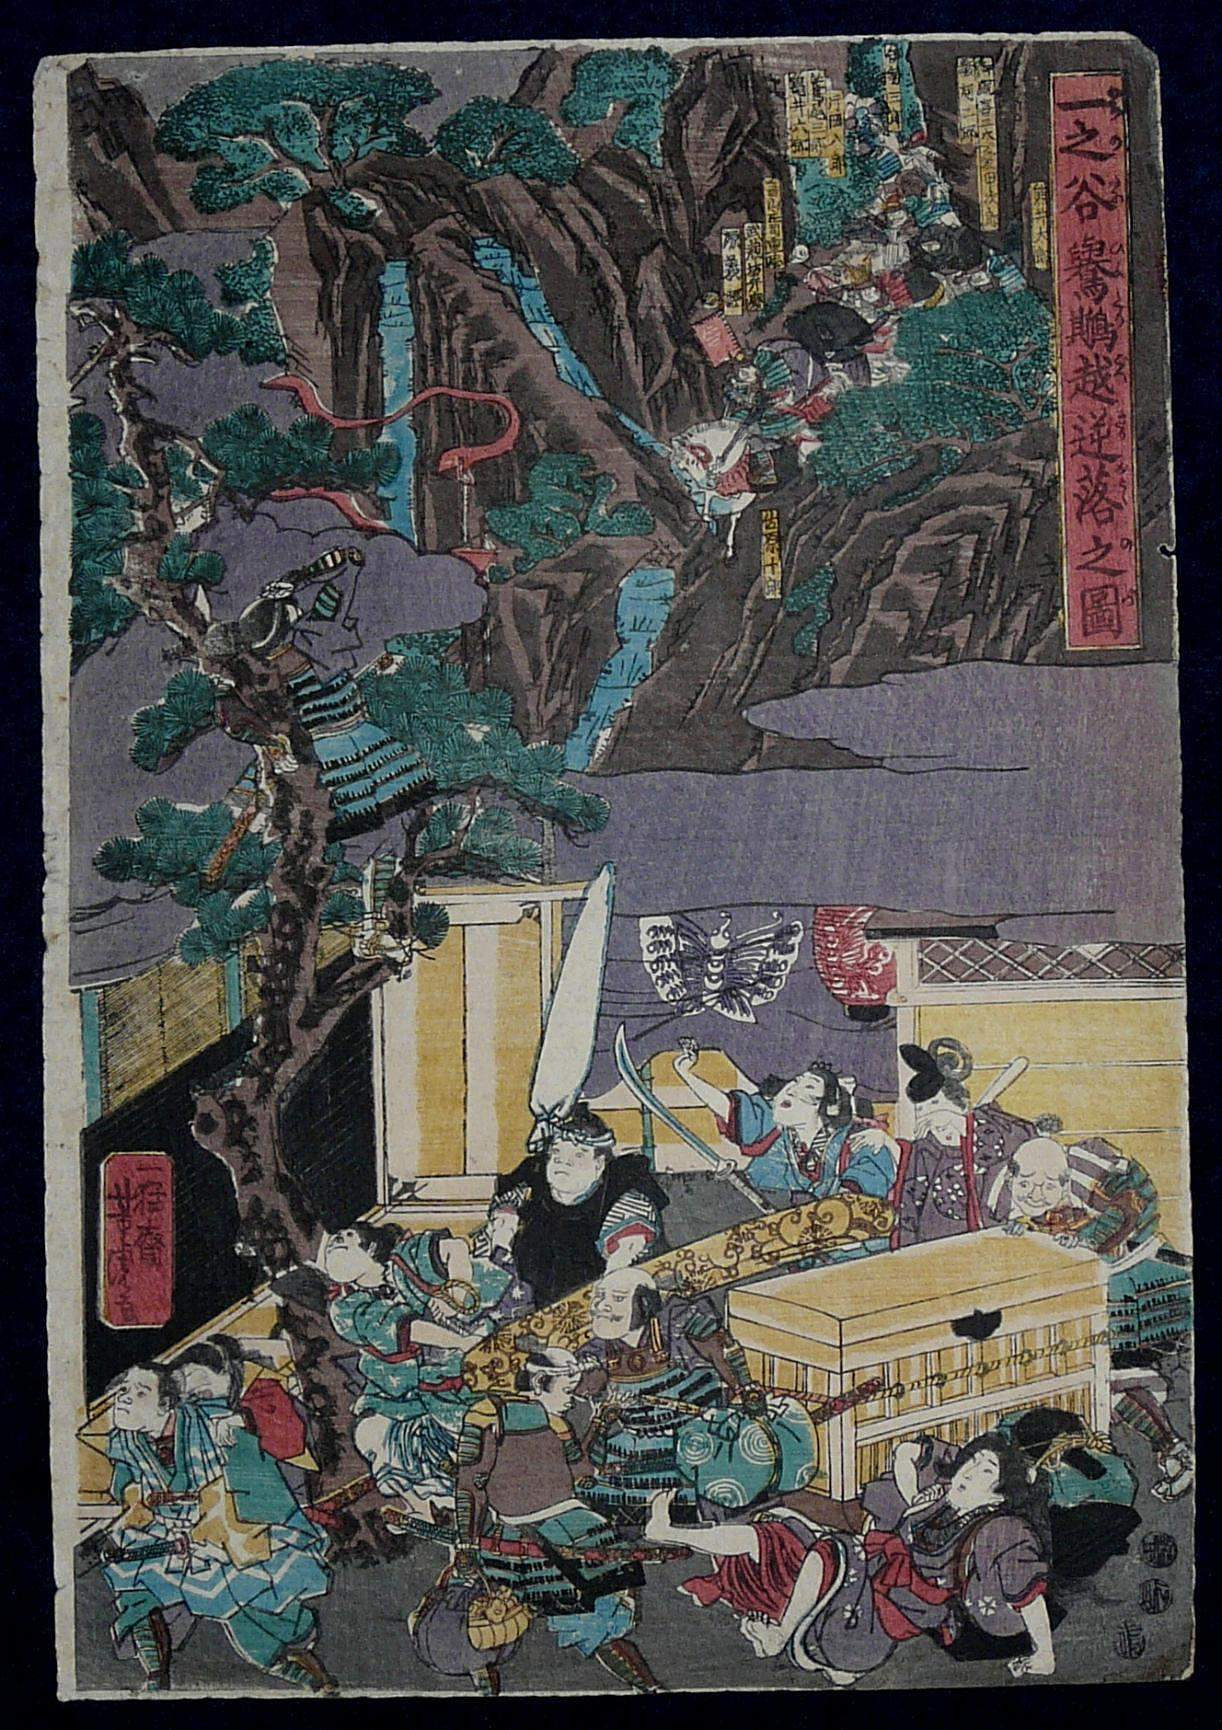 UTAGAWA YOSHITORA: #P3574 VERY RARE SAMURAI BATTLE SCENE CREATED 1852 TO 1853